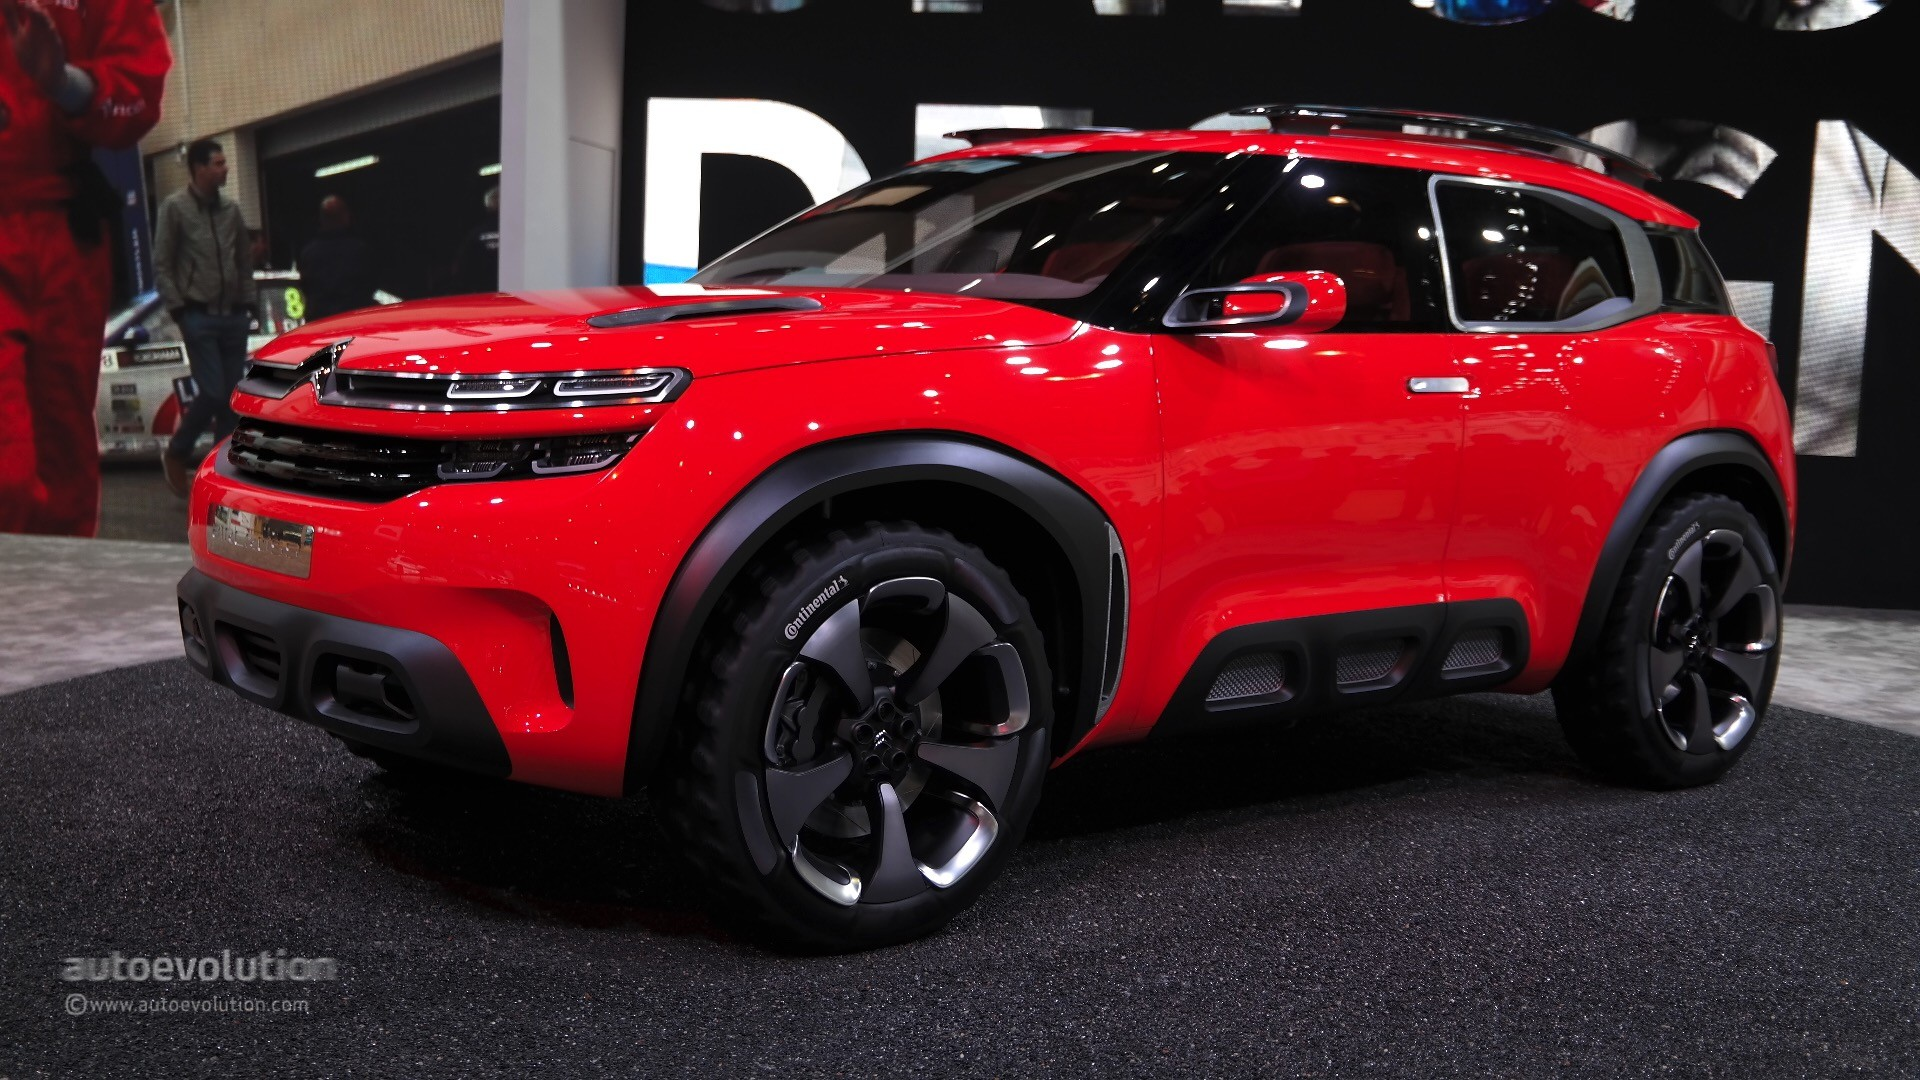 Citroen aircross concept makes a first appearance at the 2015 shanghai auto show autoevolution - Shanghai auto show ...